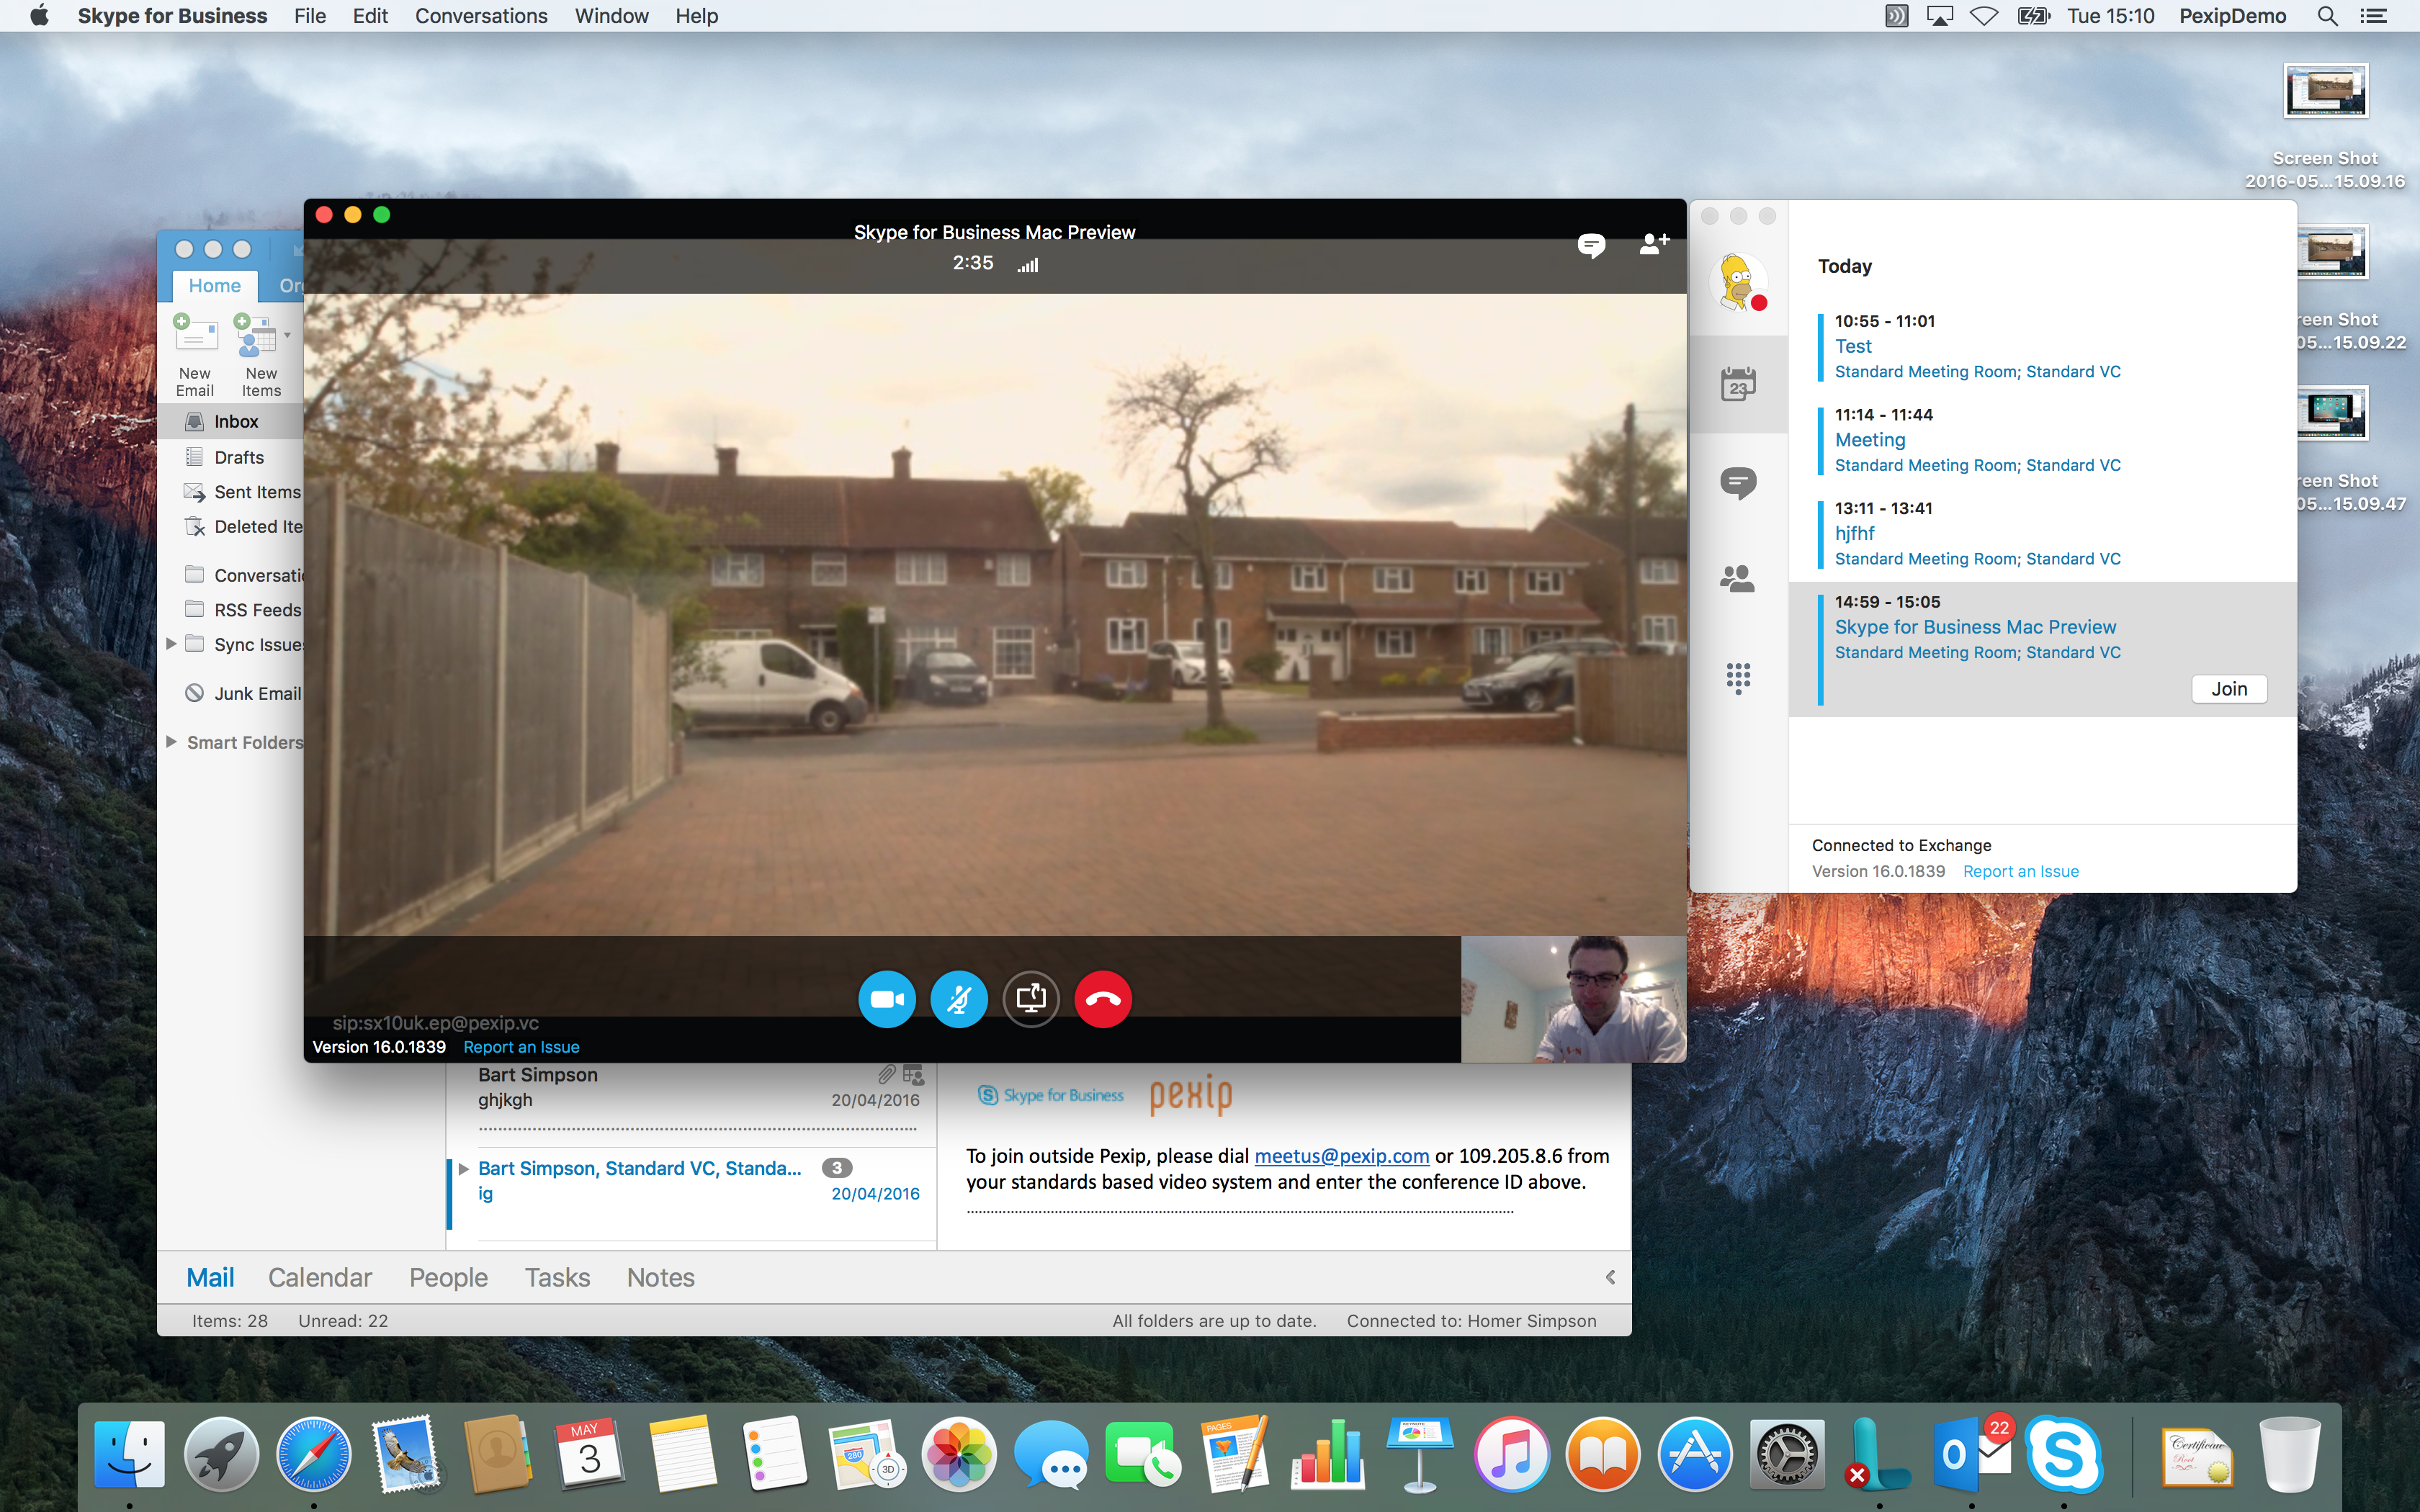 Skype for business mac preview 1 graham walsh blog screen shot 2016 05 03 at 151023 ccuart Choice Image